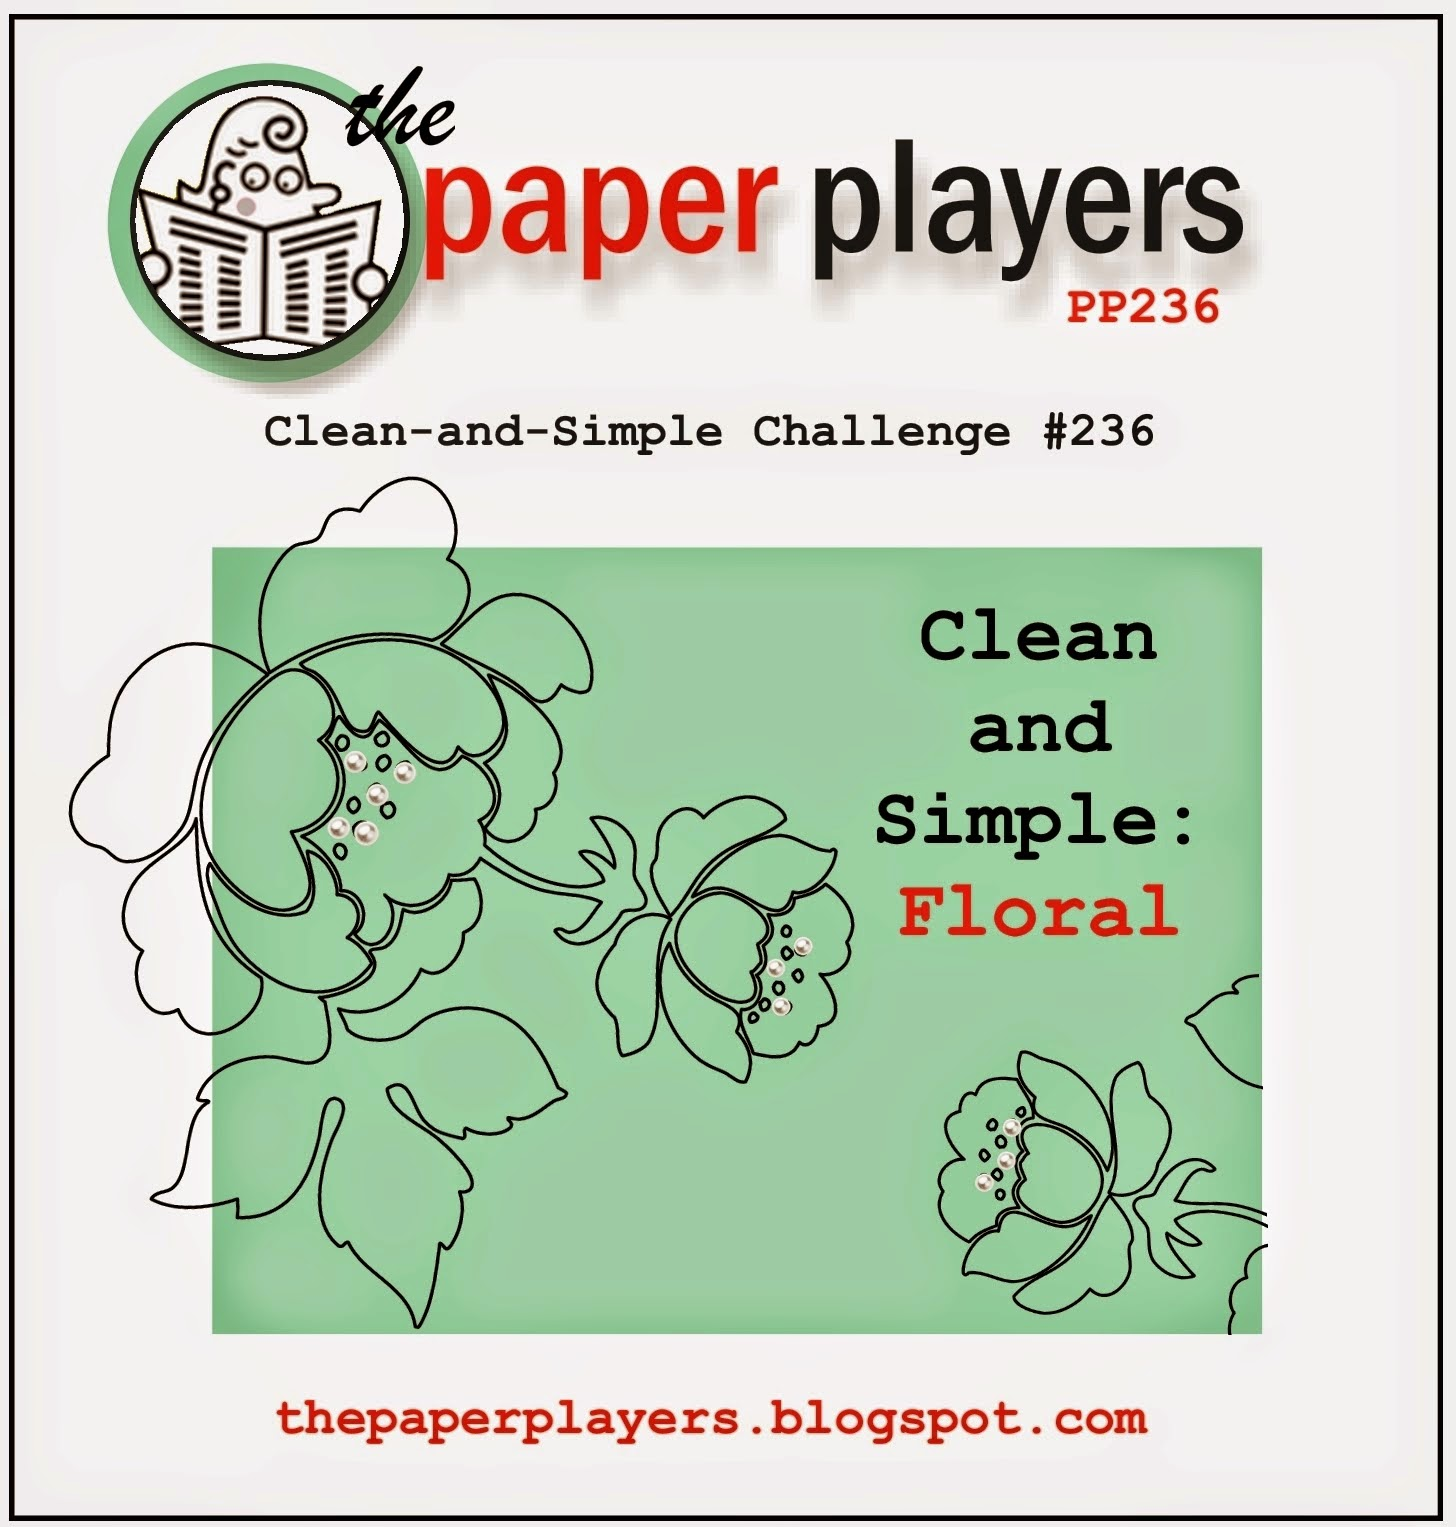 http://thepaperplayers.blogspot.ca/2015/03/pp236-anns-clean-and-simple-floral.html